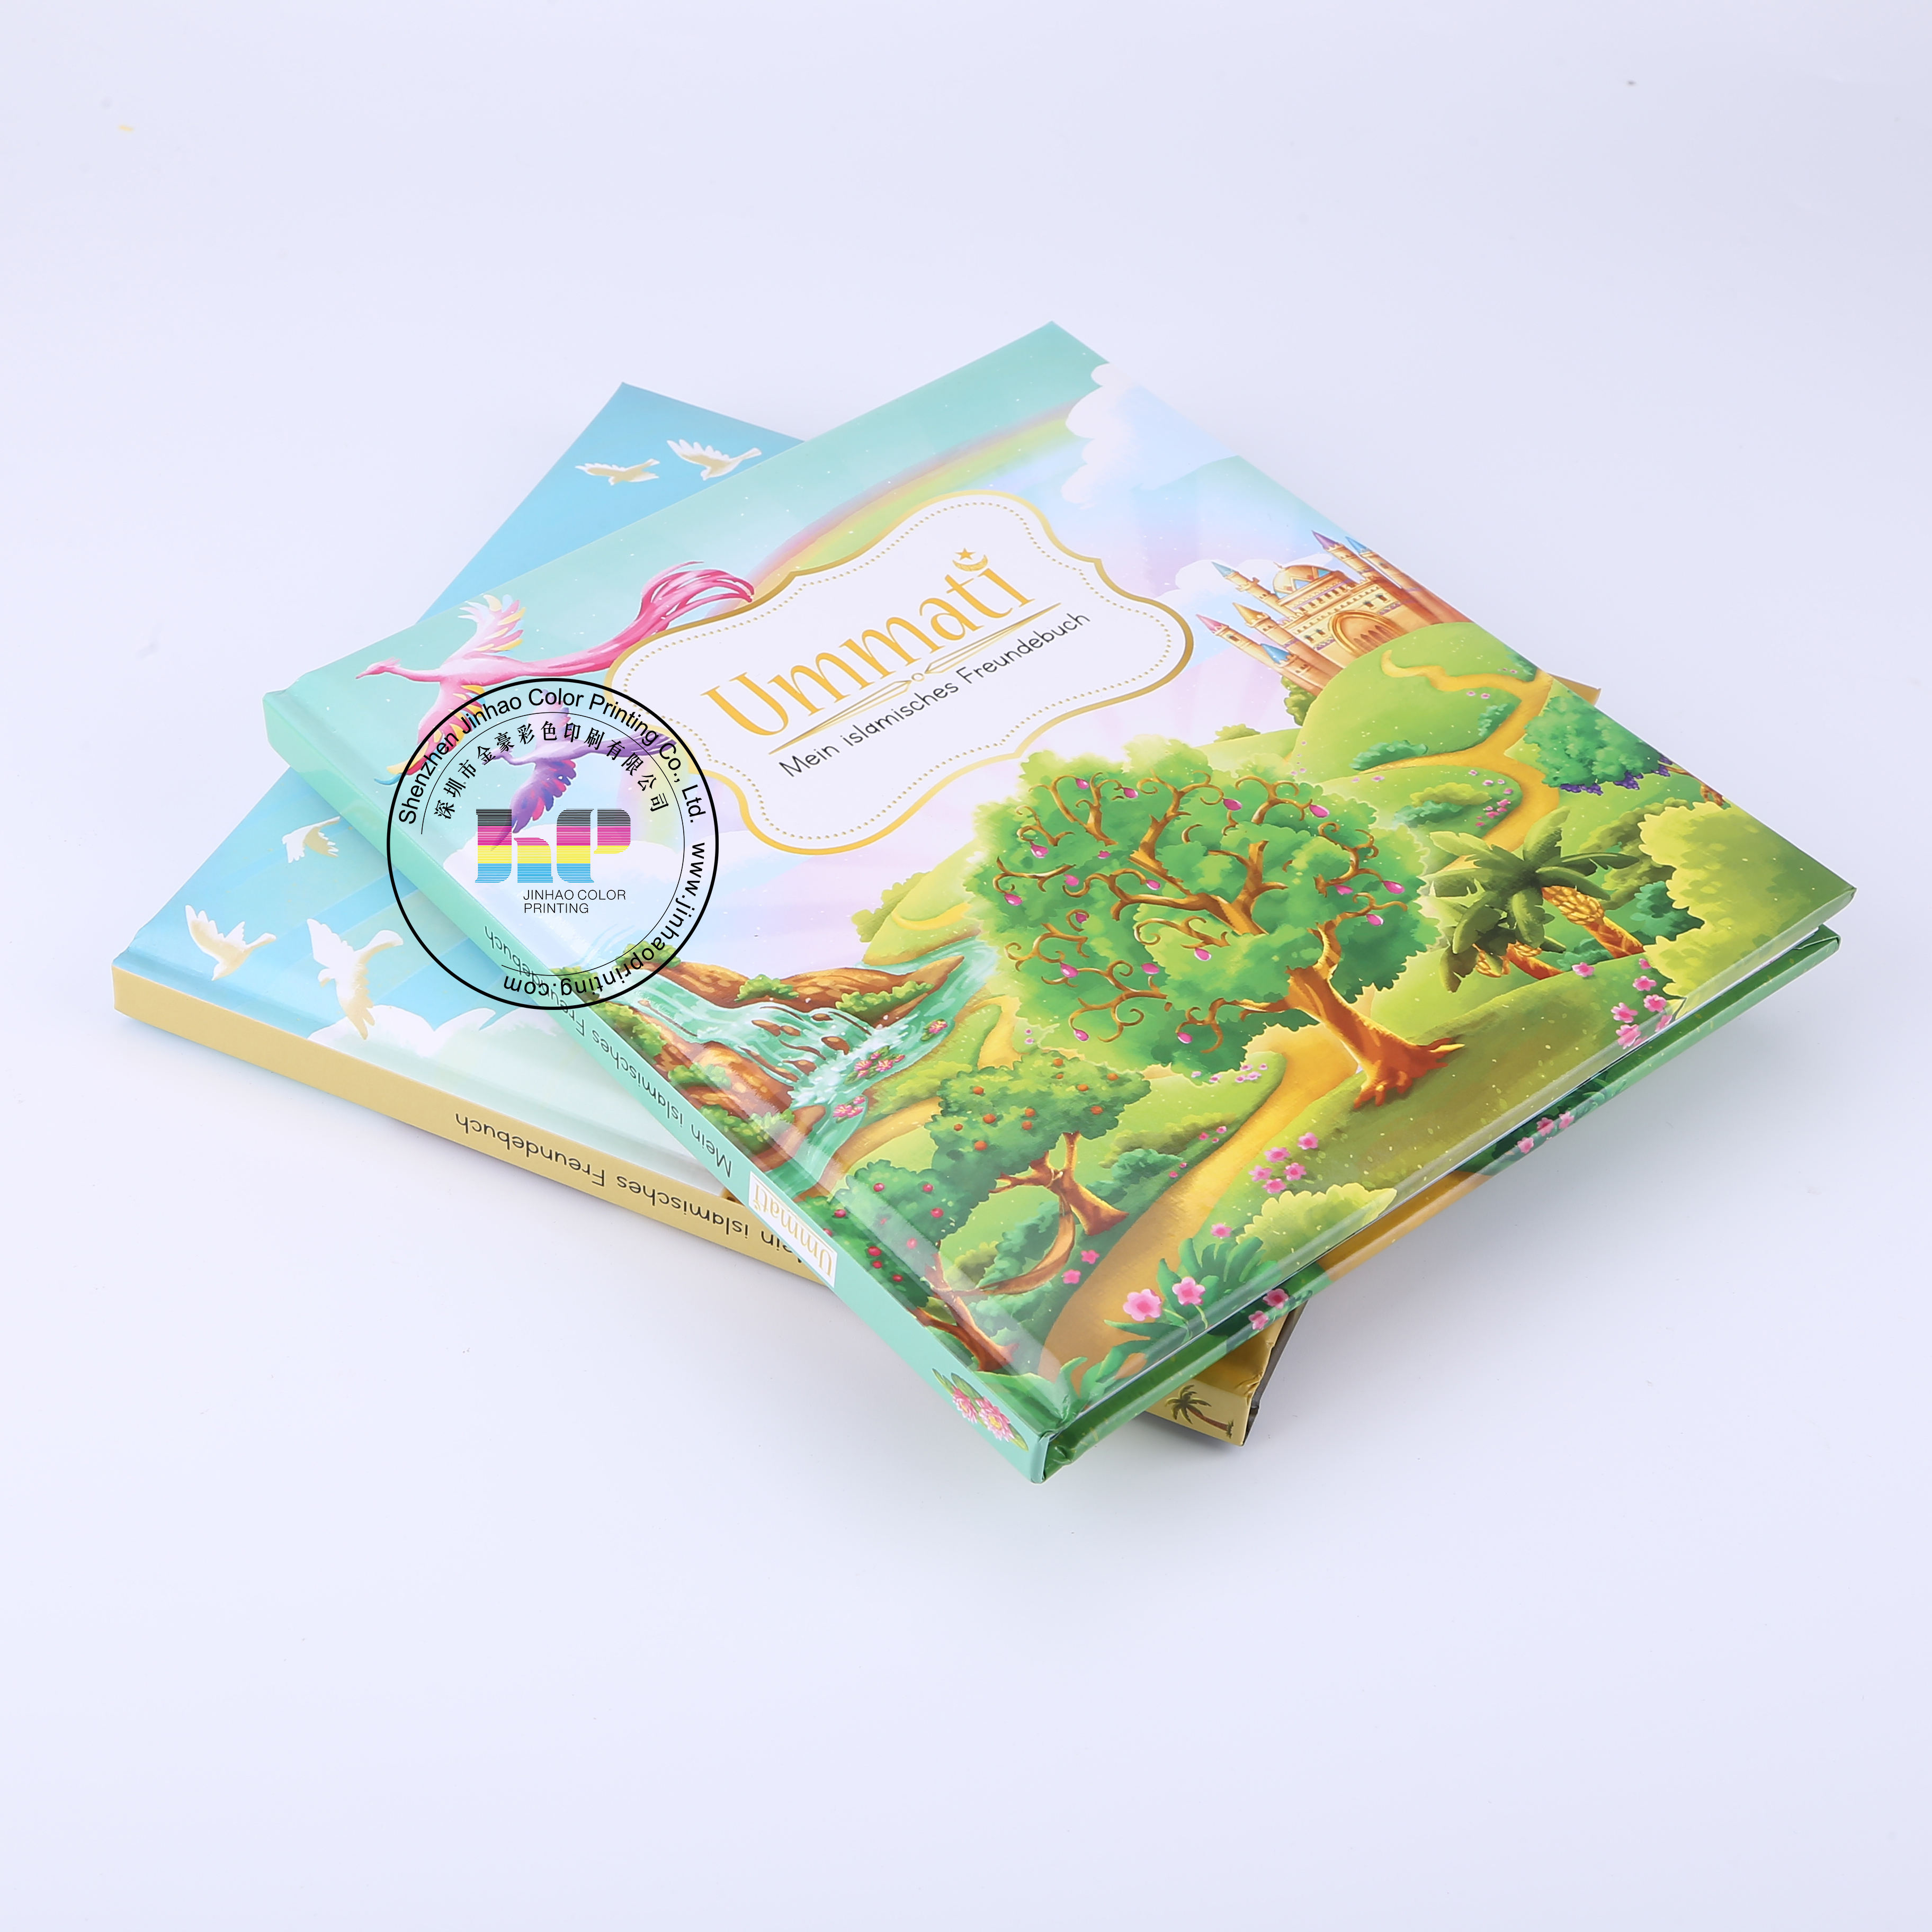 Wall kids paper world map and poster edition brochure magazine printing in Guangdong